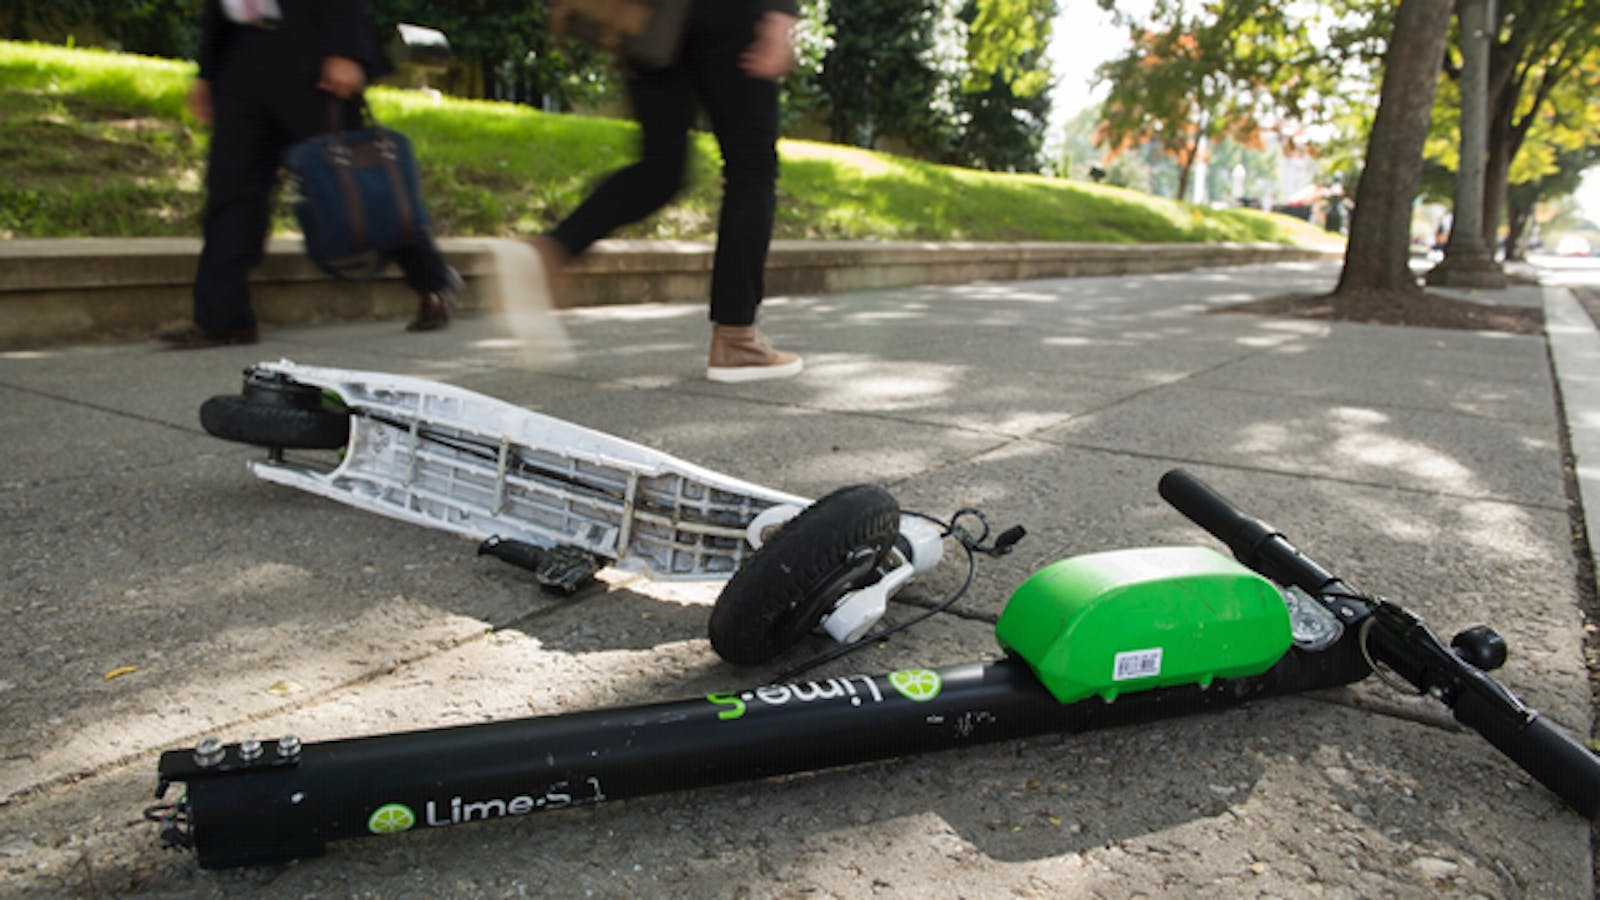 A broken Lime scooter in Washington, D.C., last year. Photo: AP